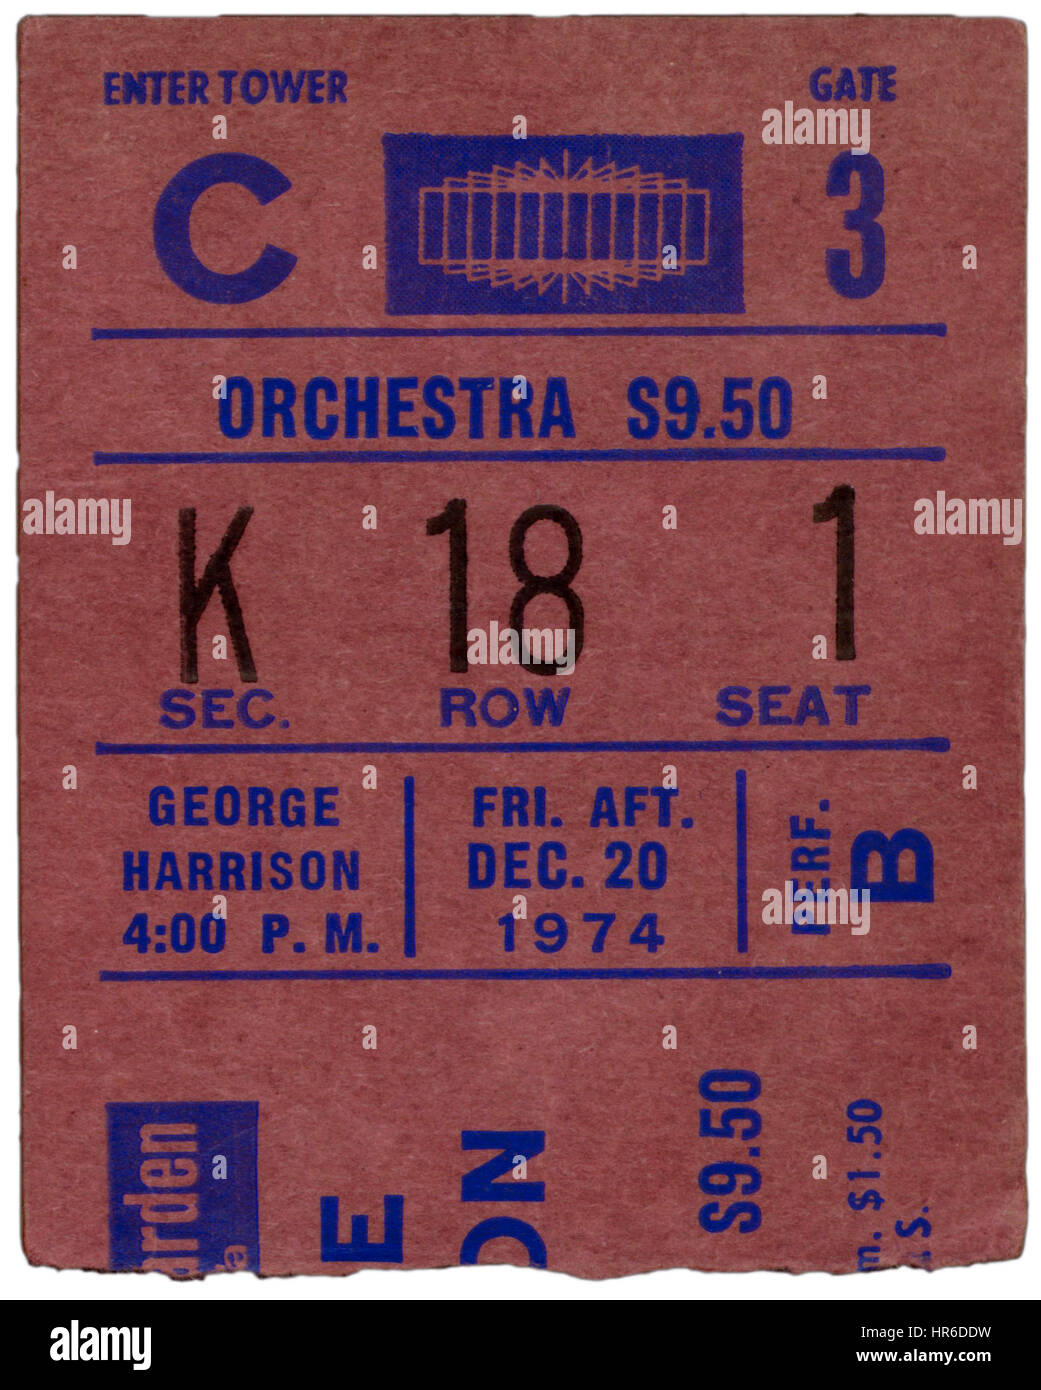 George harrison stock photos george harrison stock - Paul mccartney madison square garden tickets ...